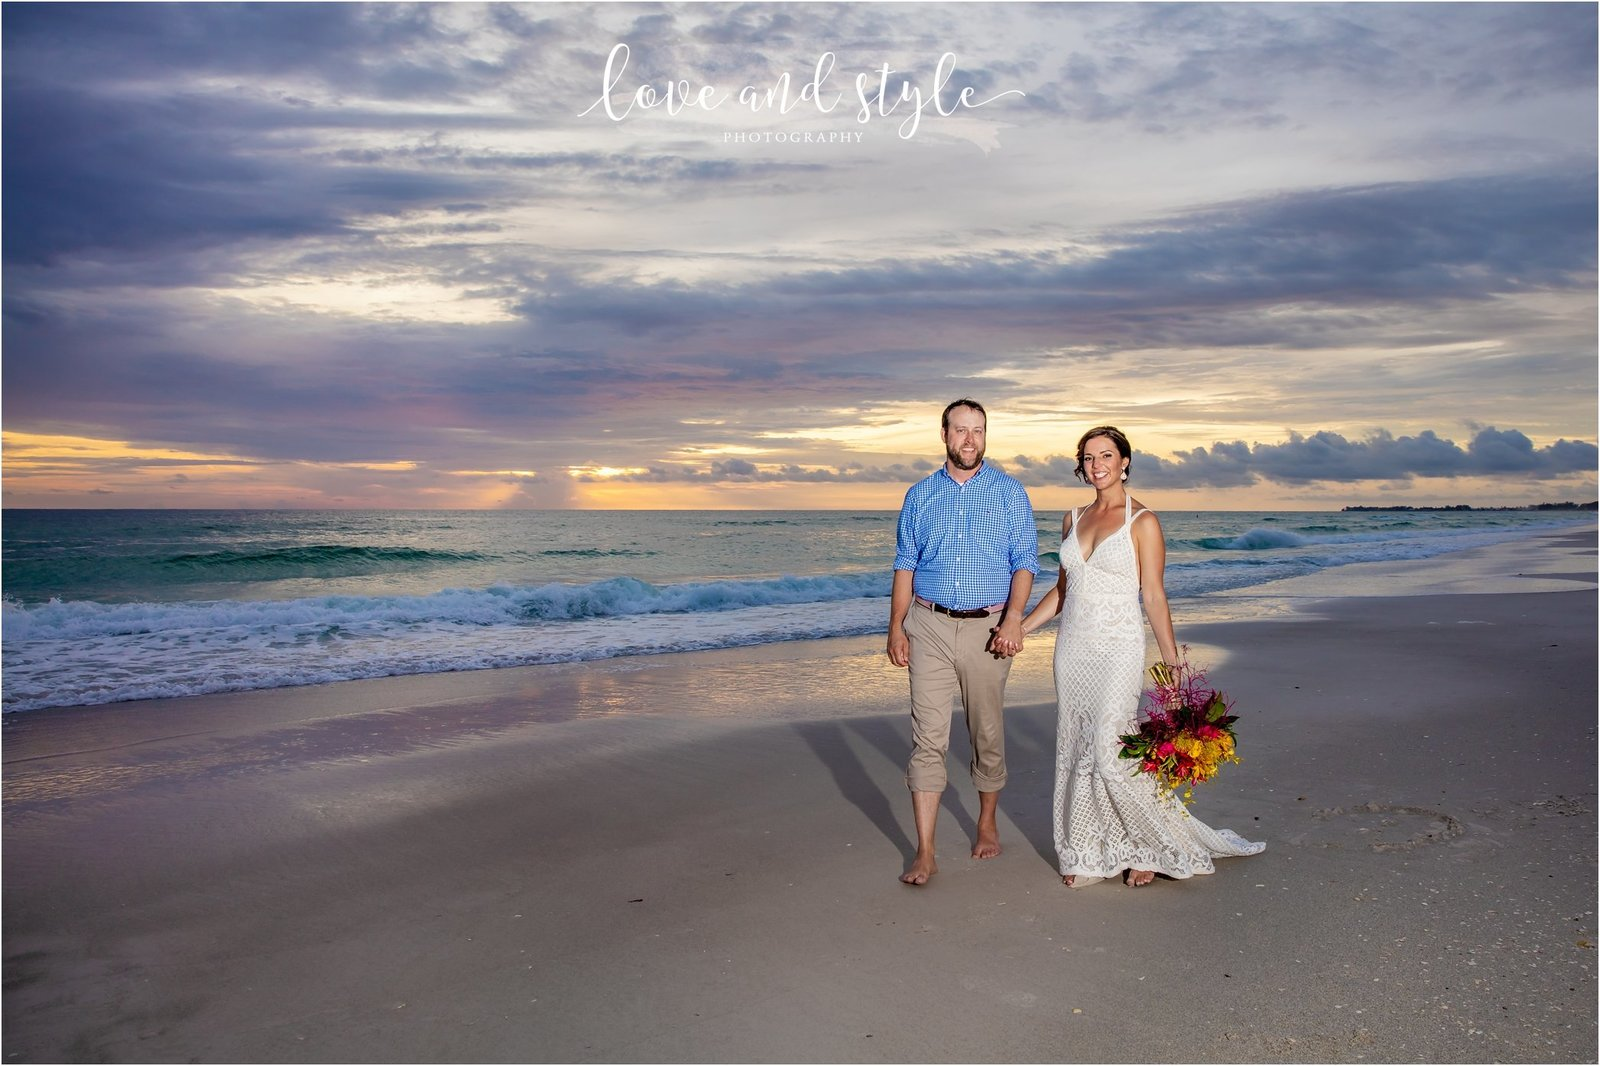 Bride and Groom walking on Bradenton Beach at Sunset in front of The Beach House Restaurant, Anna Maria Island